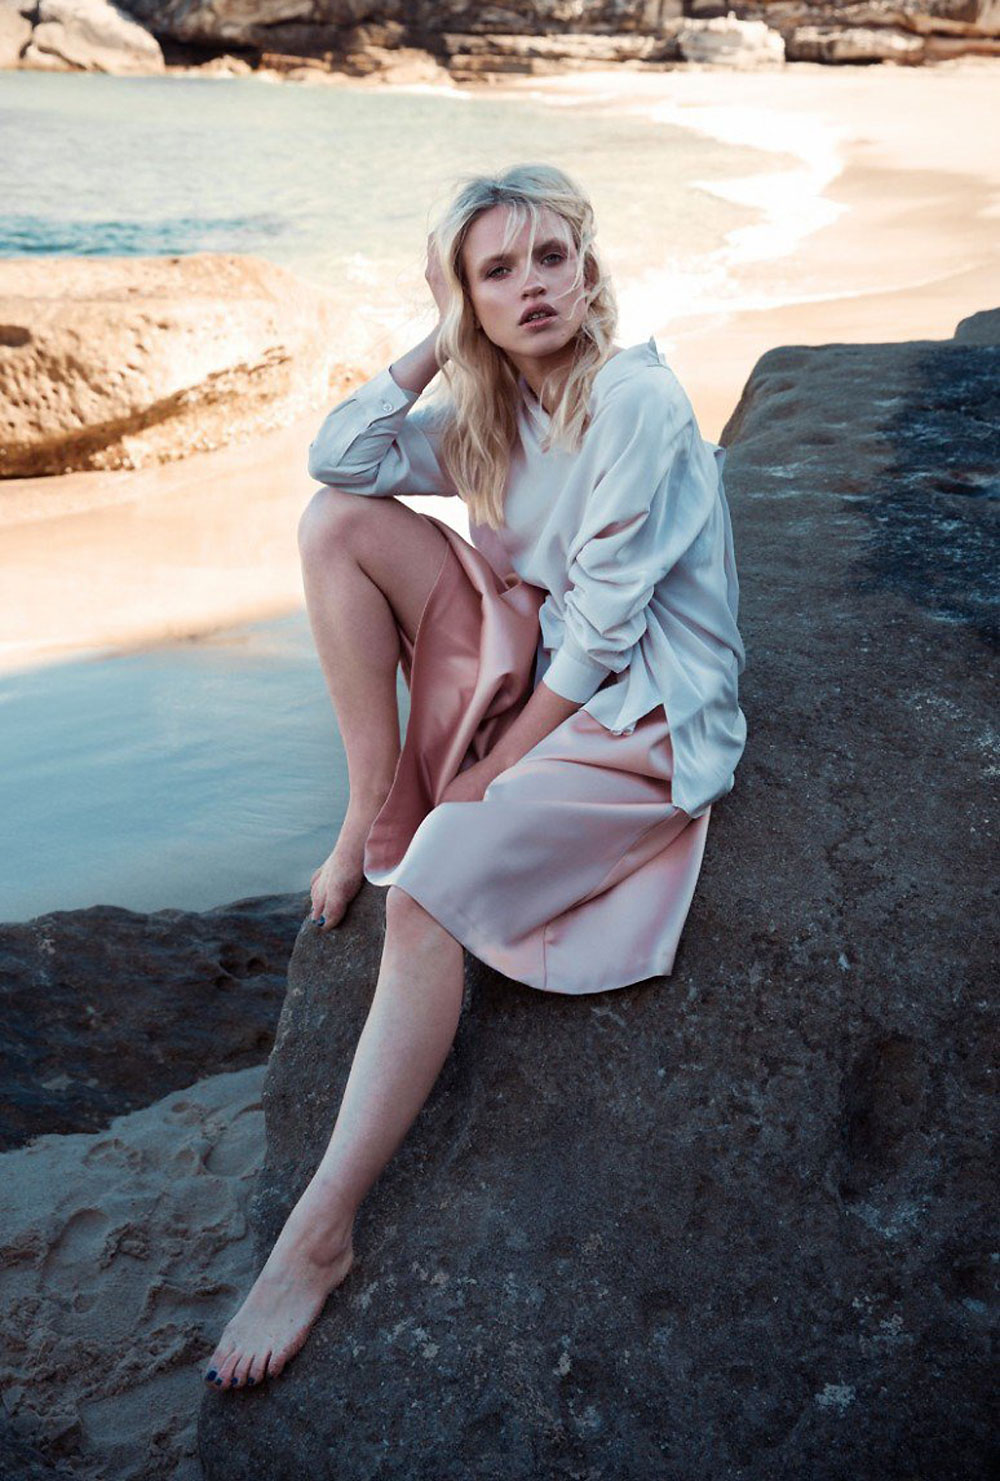 anja-konstantinova-emily-abay-fashion-editorial-Love_rush.51